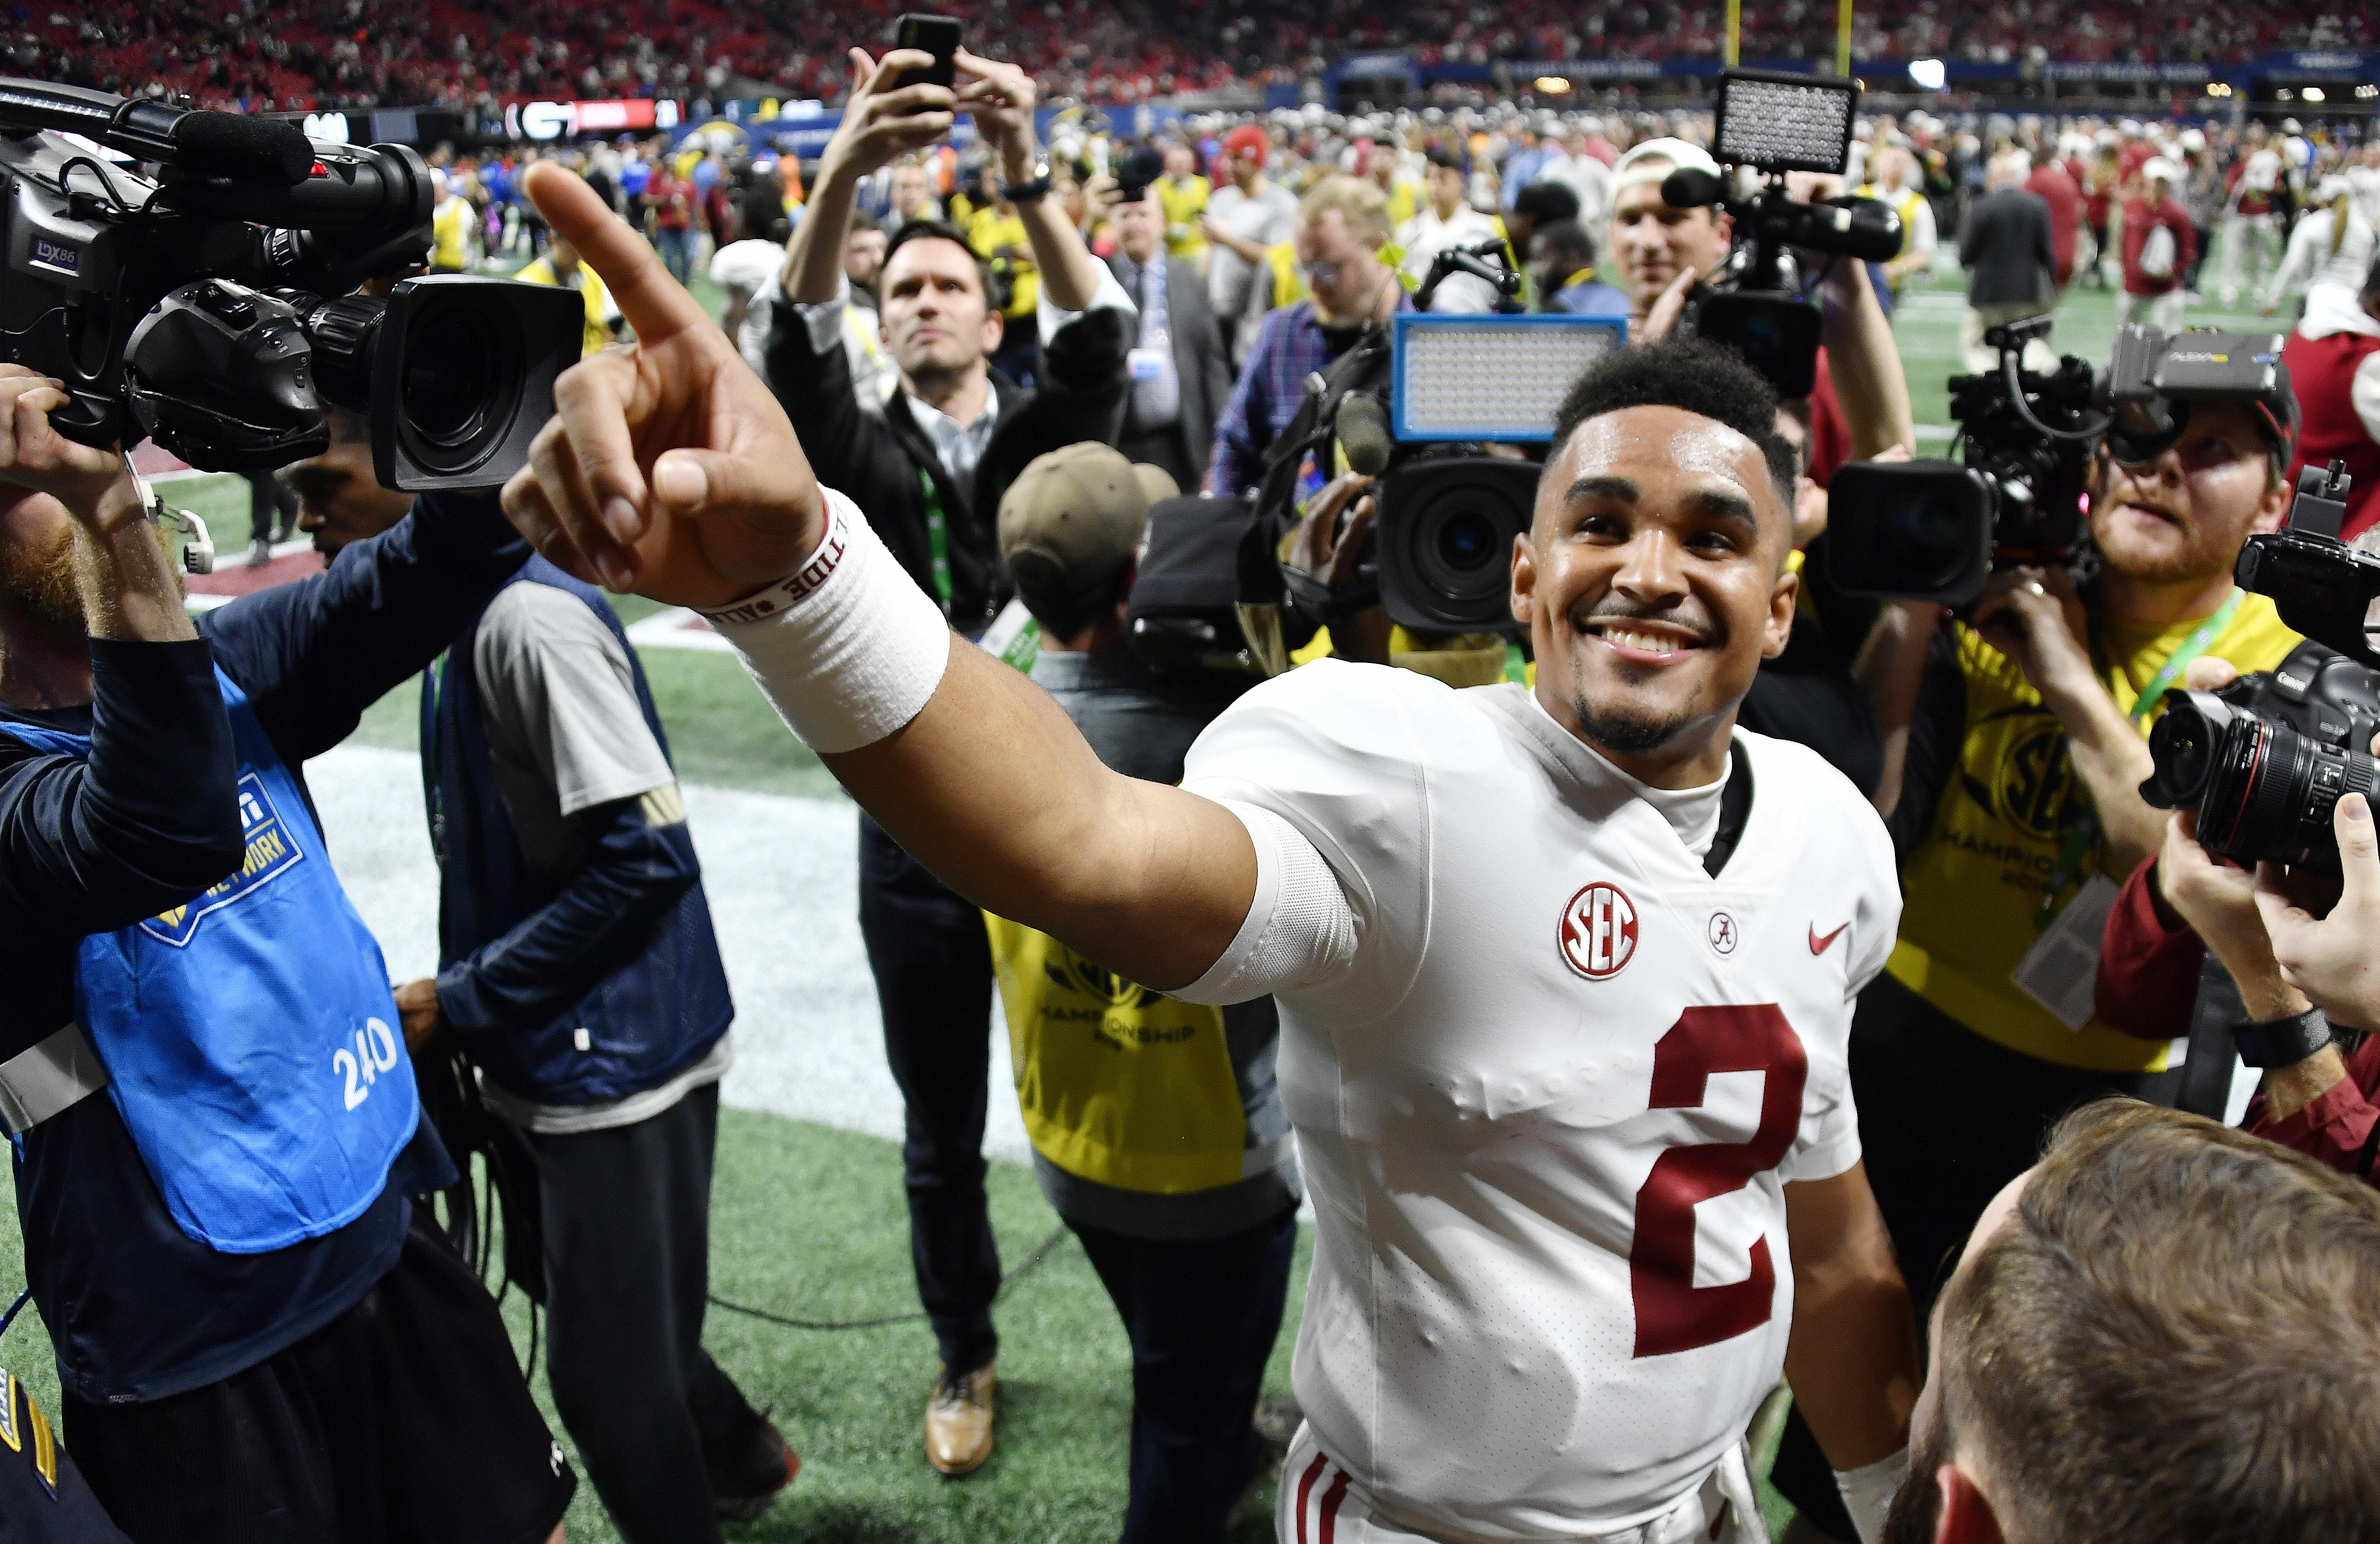 eca3e234315 Alabama quarterback Jalen Hurts speaks to fans after the Southeastern  Conference championship game against Georgia on